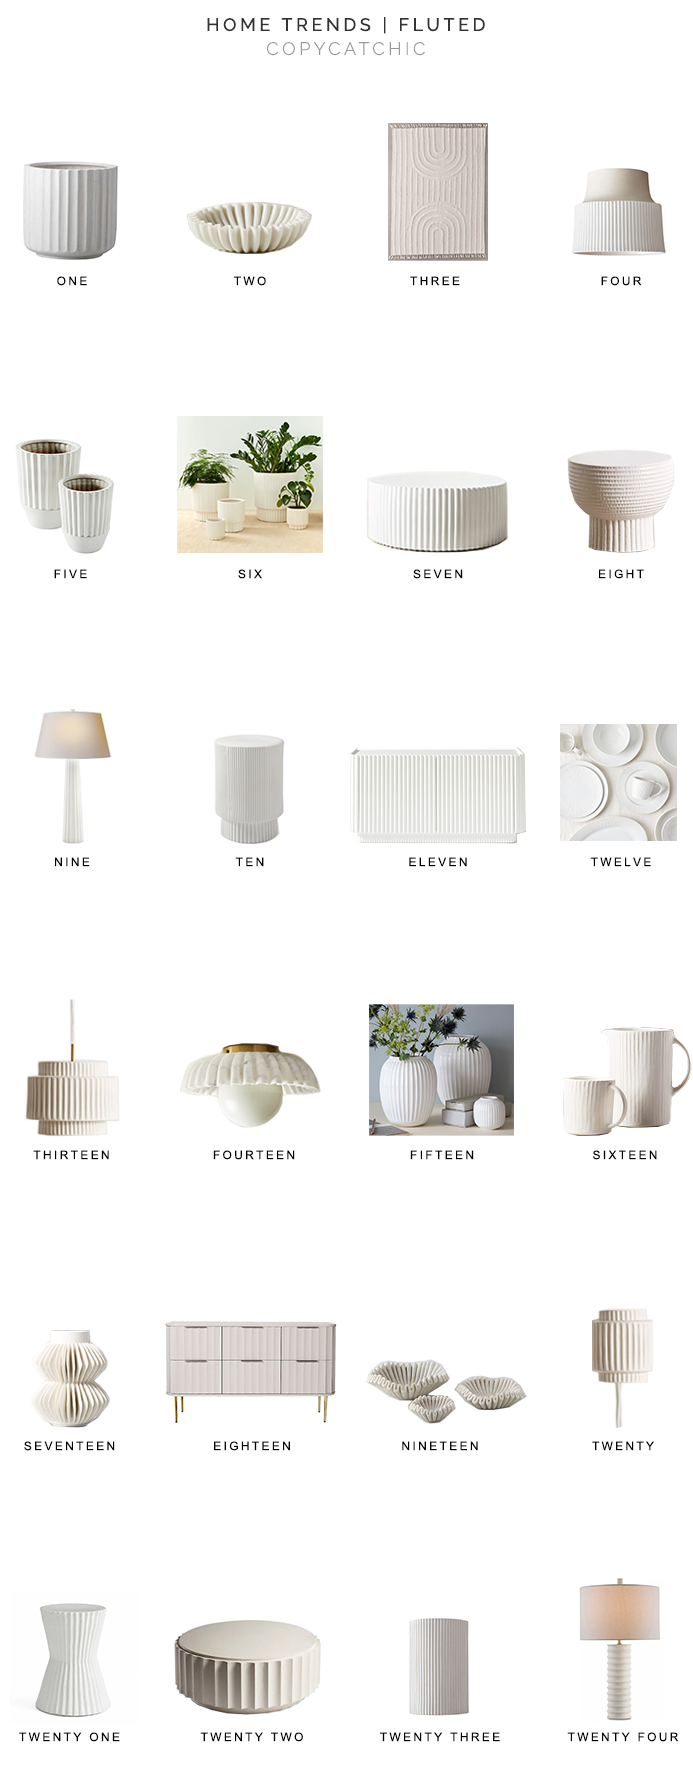 fluted decor for less, copycatchic luxe living for less, budget home decor and design, daily finds, home trends, sales, budget travel and room redos